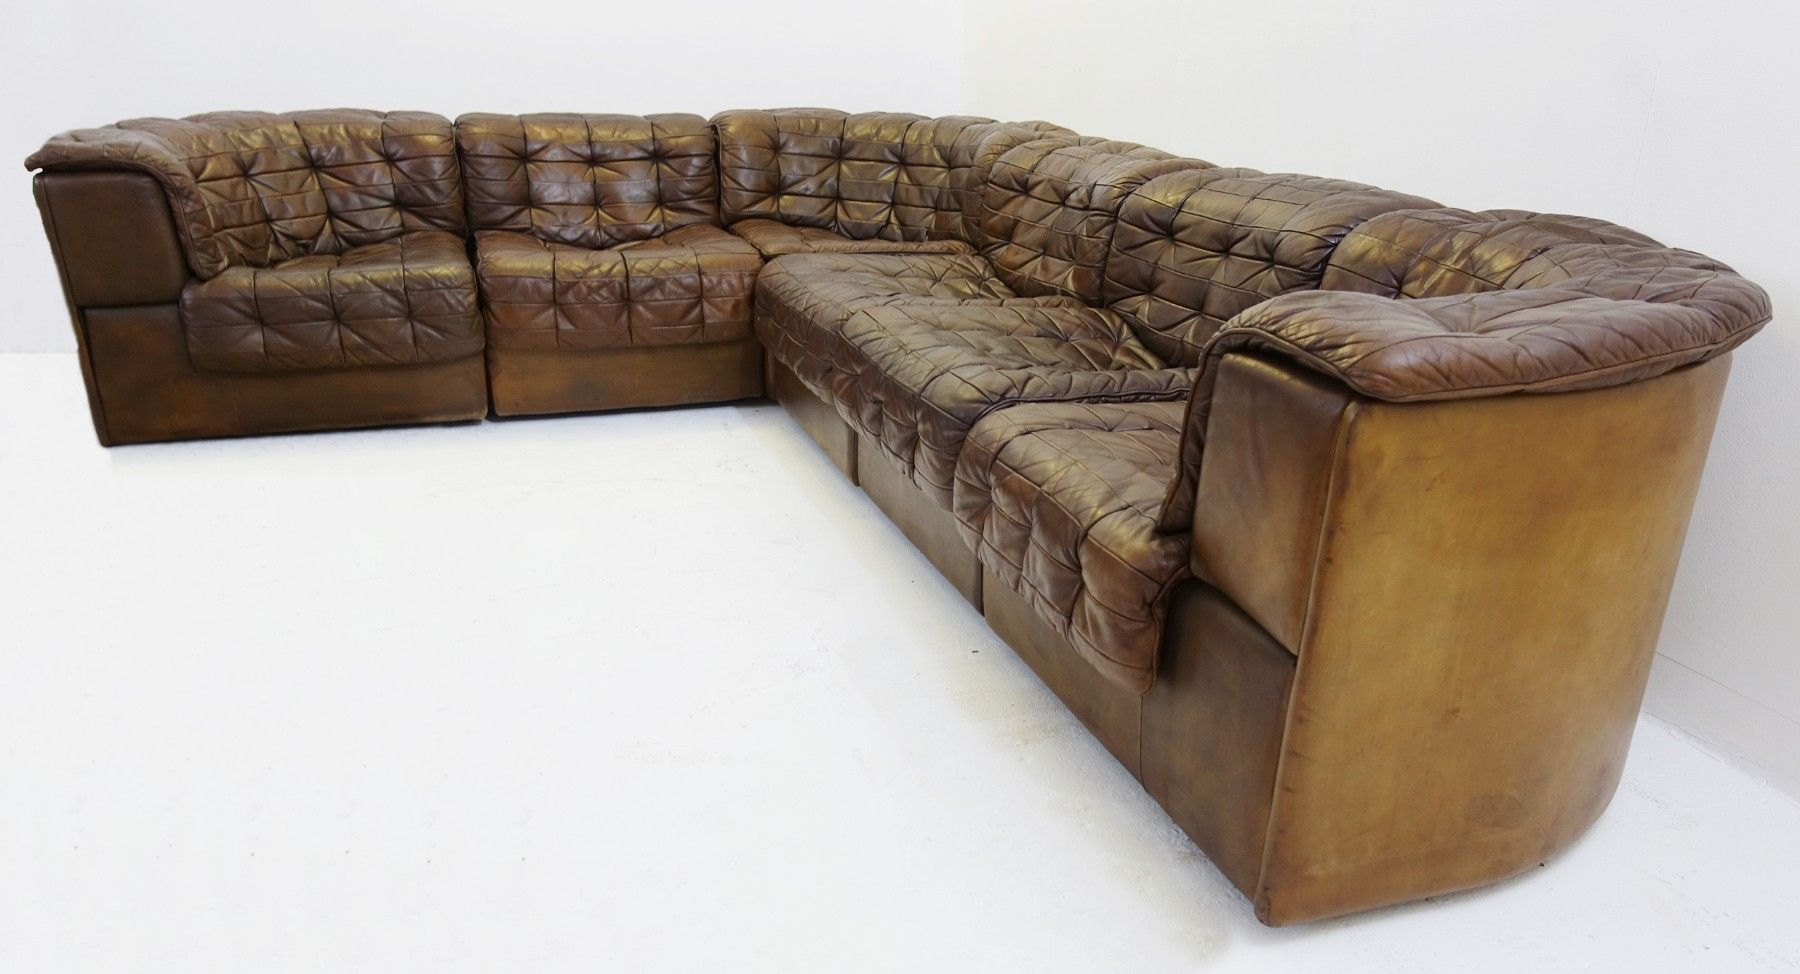 Large Modular Ds 11 Patchwork Leather Sofa From De Sede